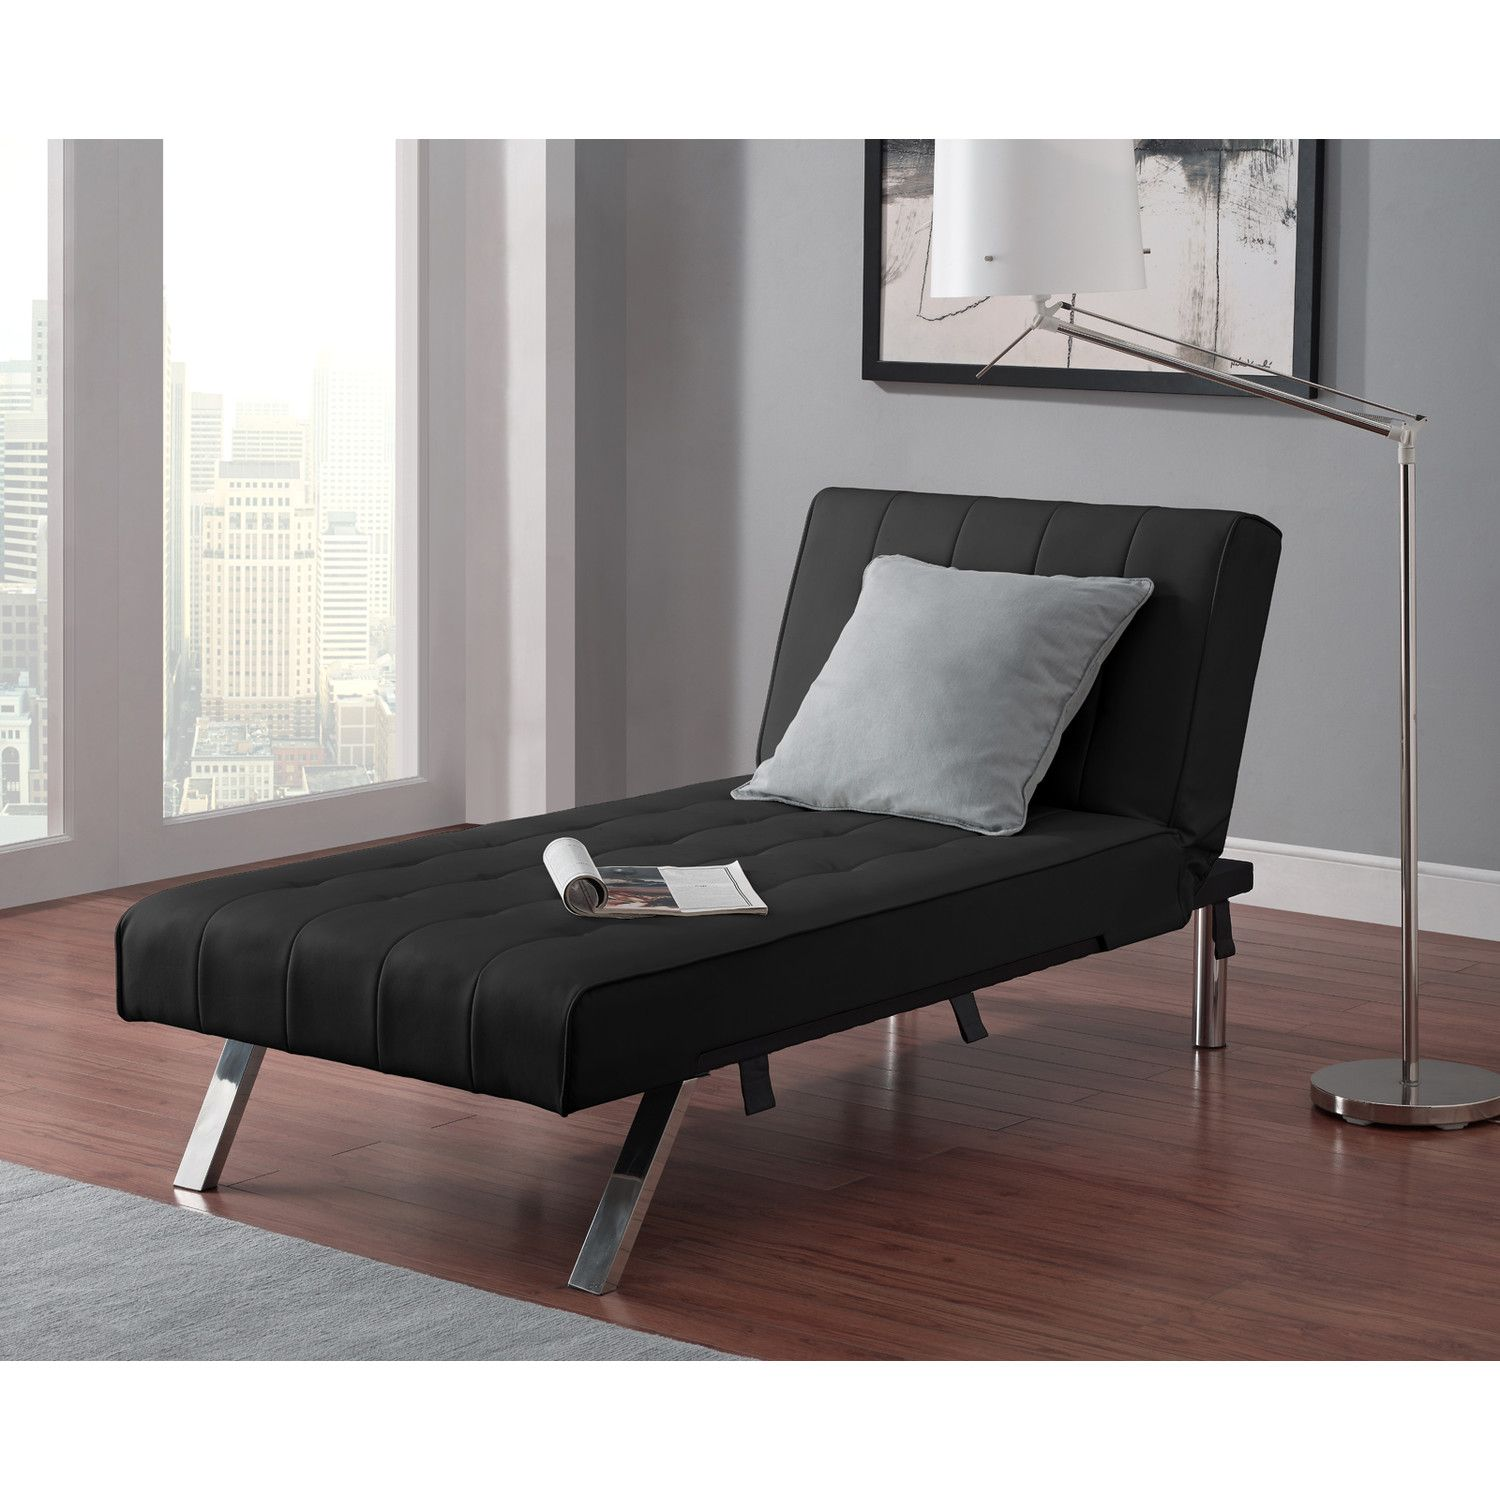 Use a convertible lounge as a chair and a sleeper, which is ideal when you need an extra bed in your home but don't have the room for a traditional bed, such as a twin bed.